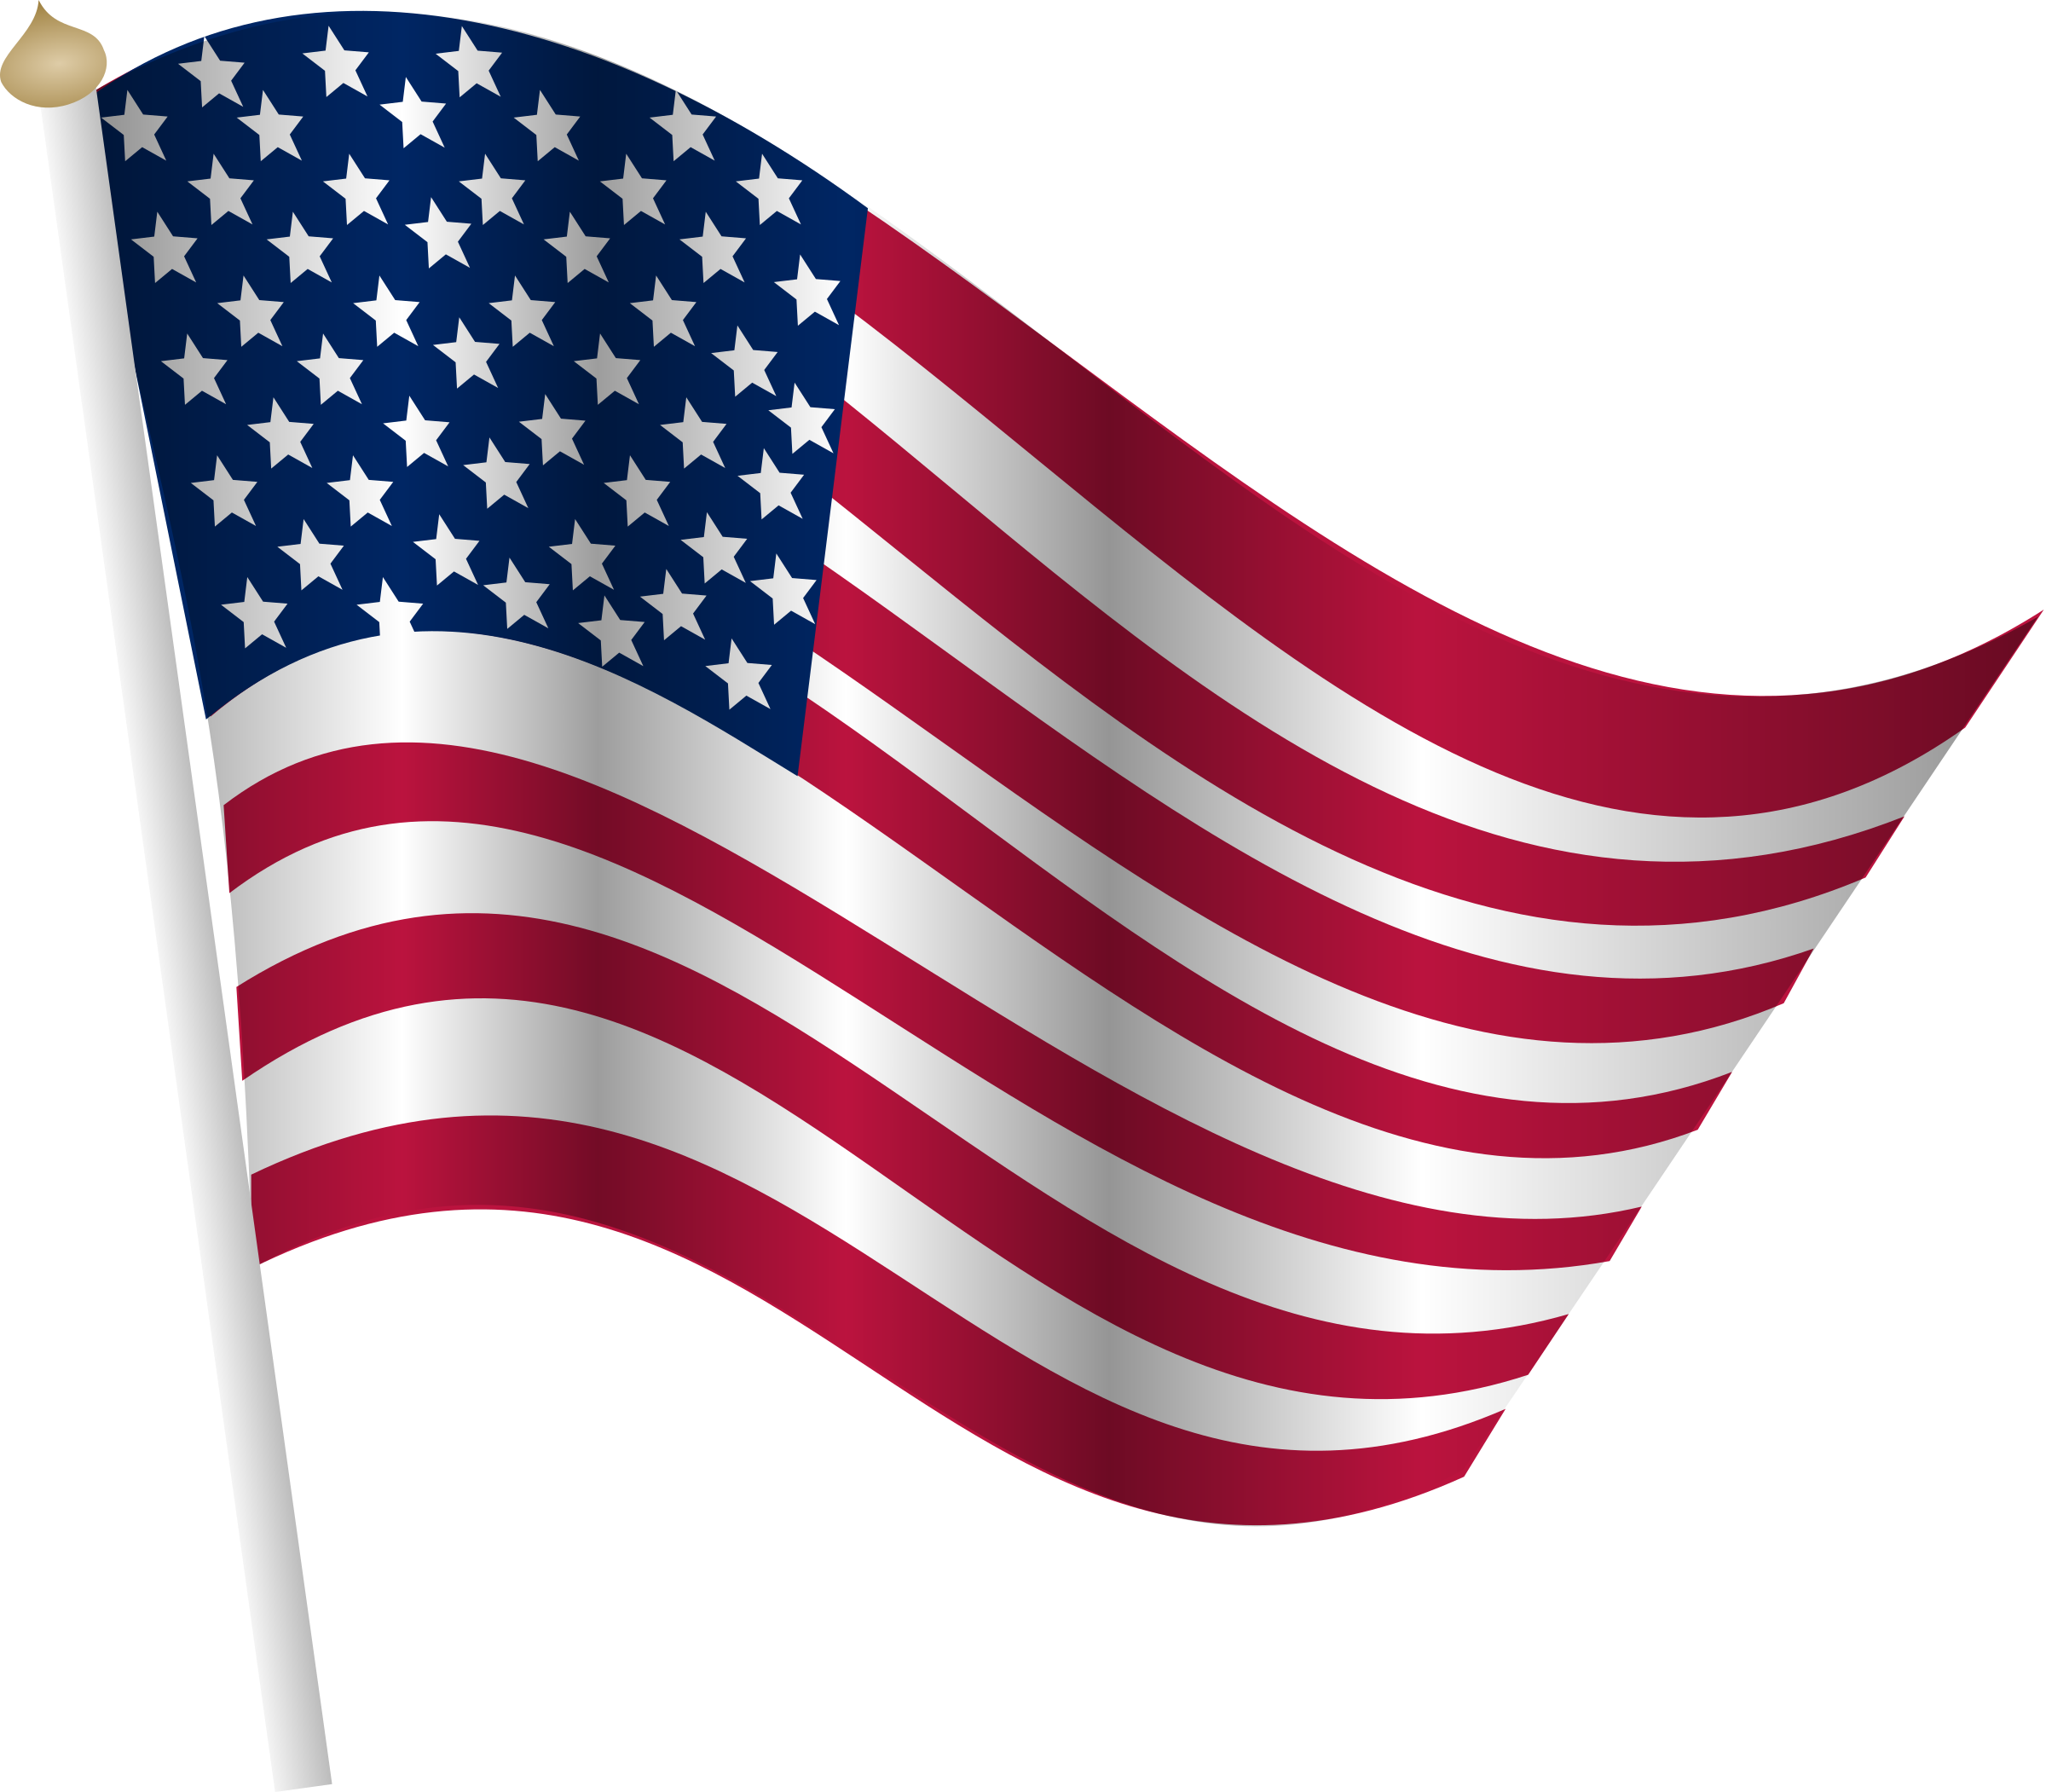 American flag big image. Land clipart country land